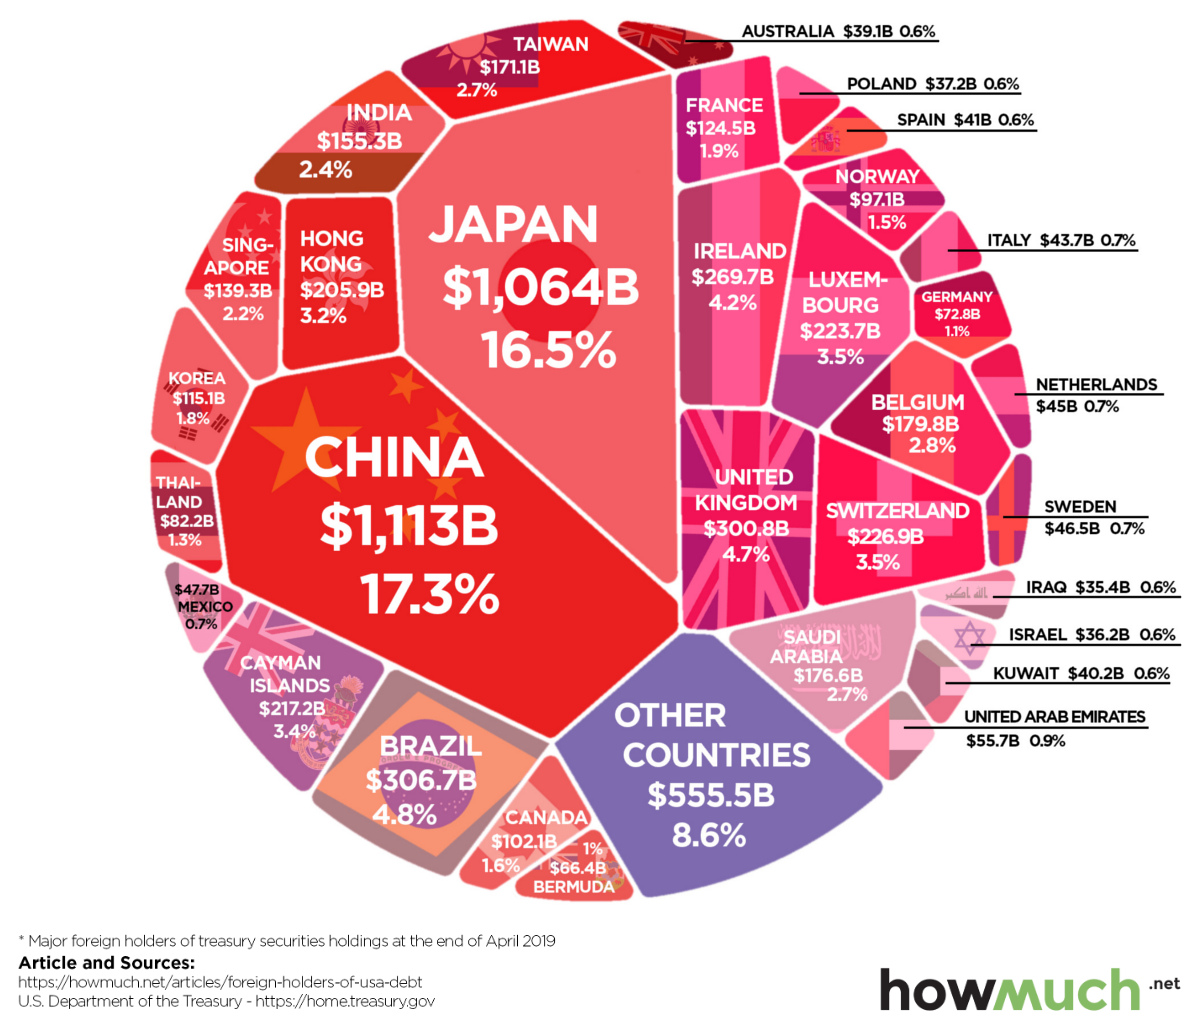 Foreign Countries Holding the Most U.S. Debt